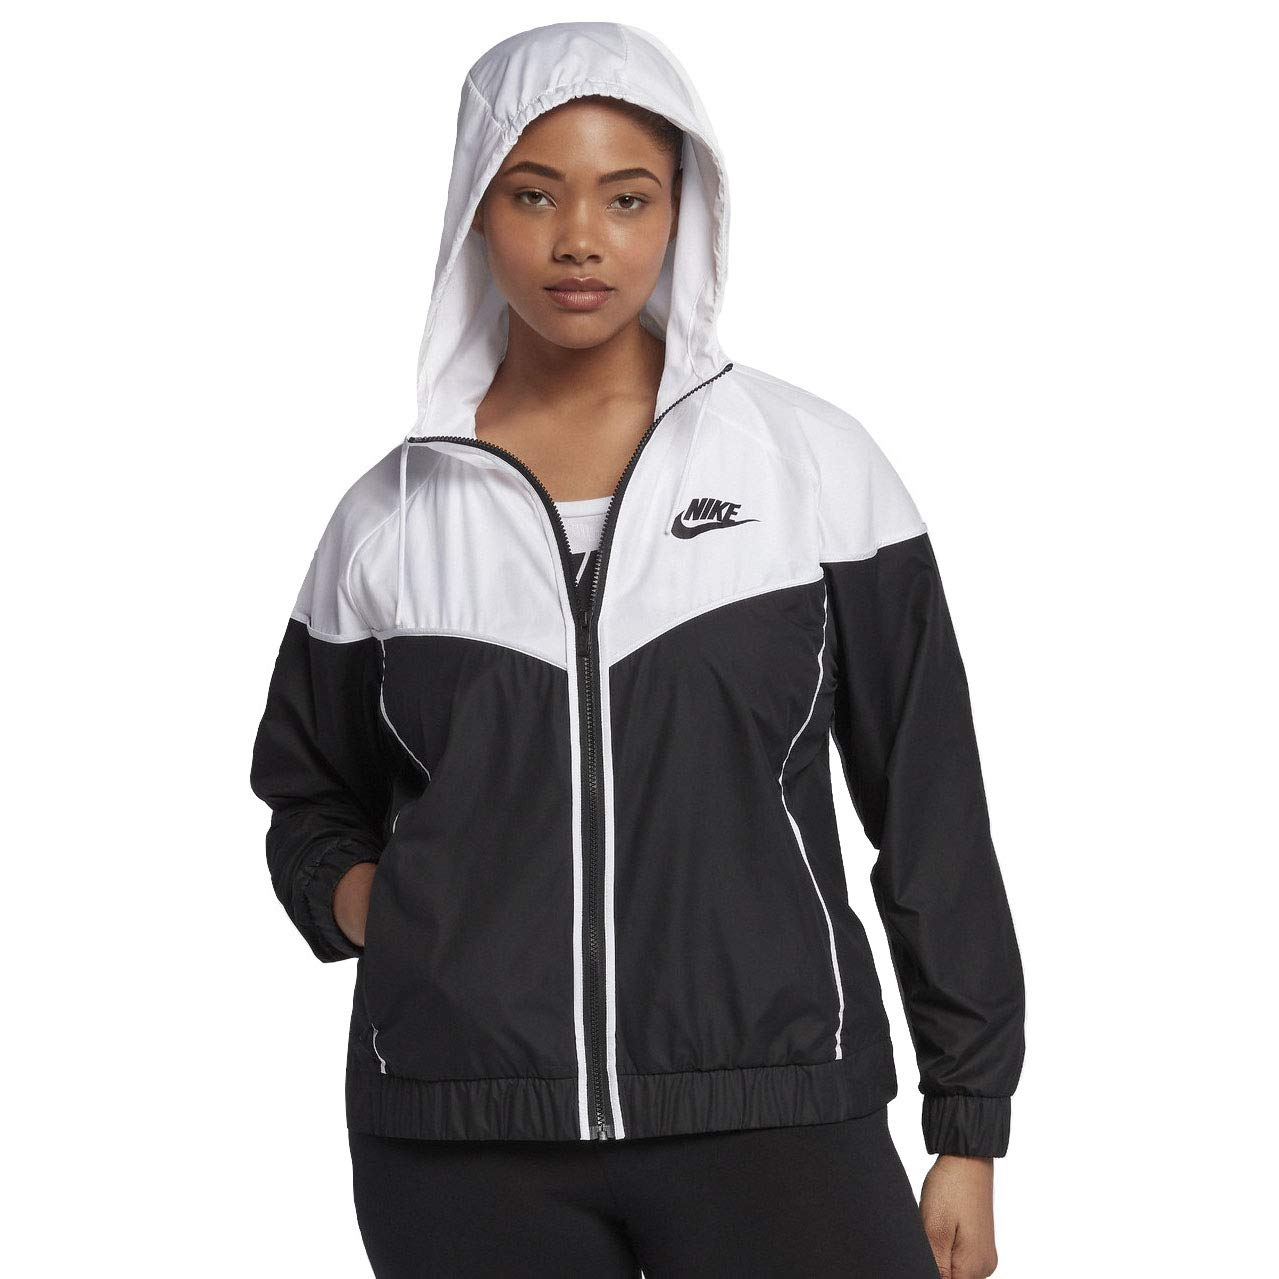 NIKE Sportswear Windrunner Women's Jacket (Plus Size) (Black/White, 1X)